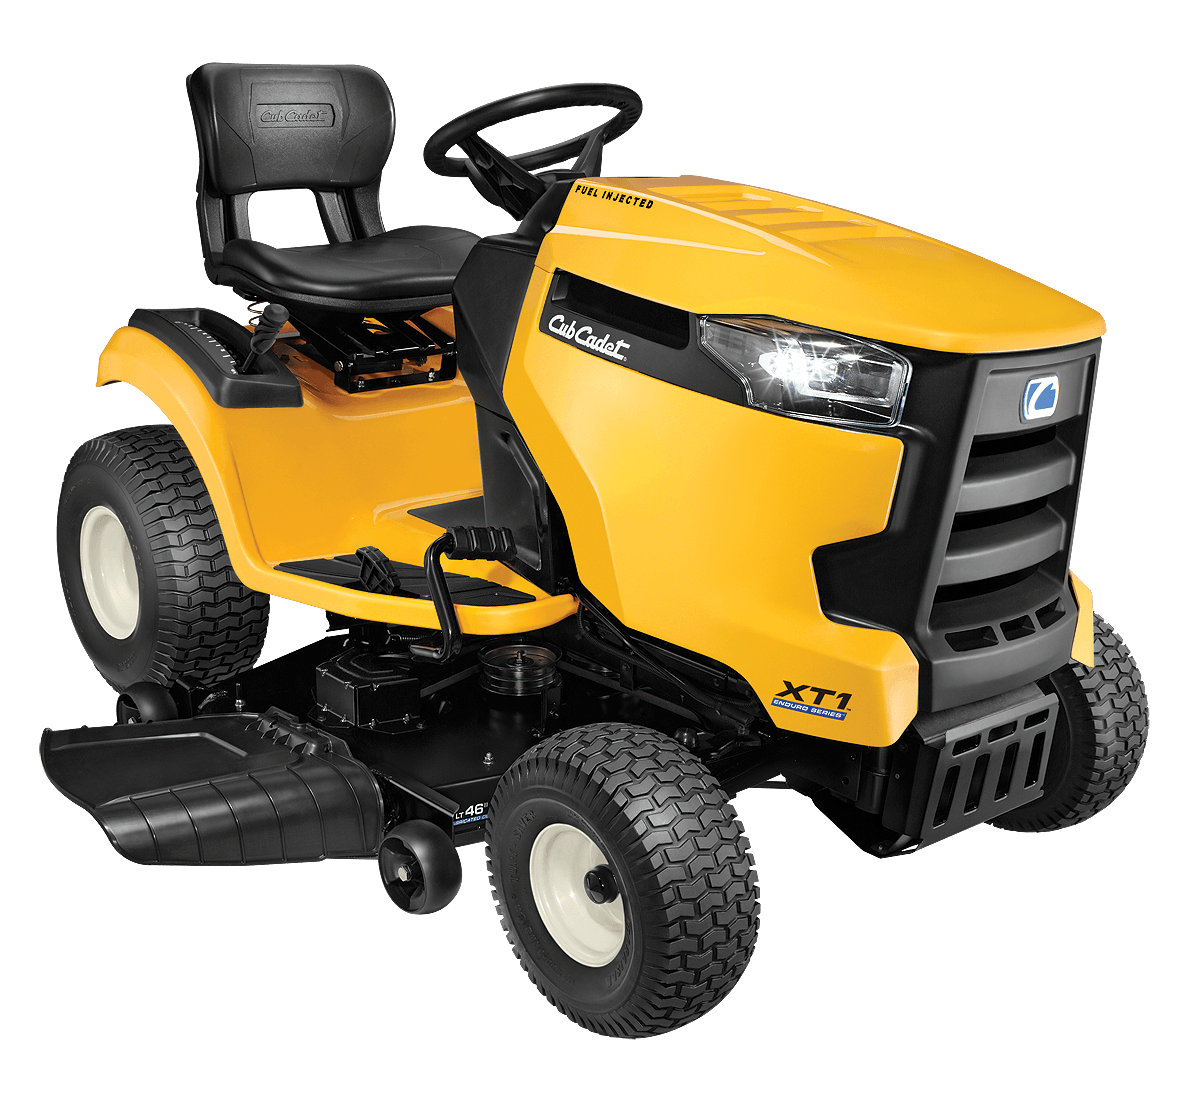 2017 Cub Cadet XT1 LT 46 in. EFI FAB in Inver Grove Heights, Minnesota